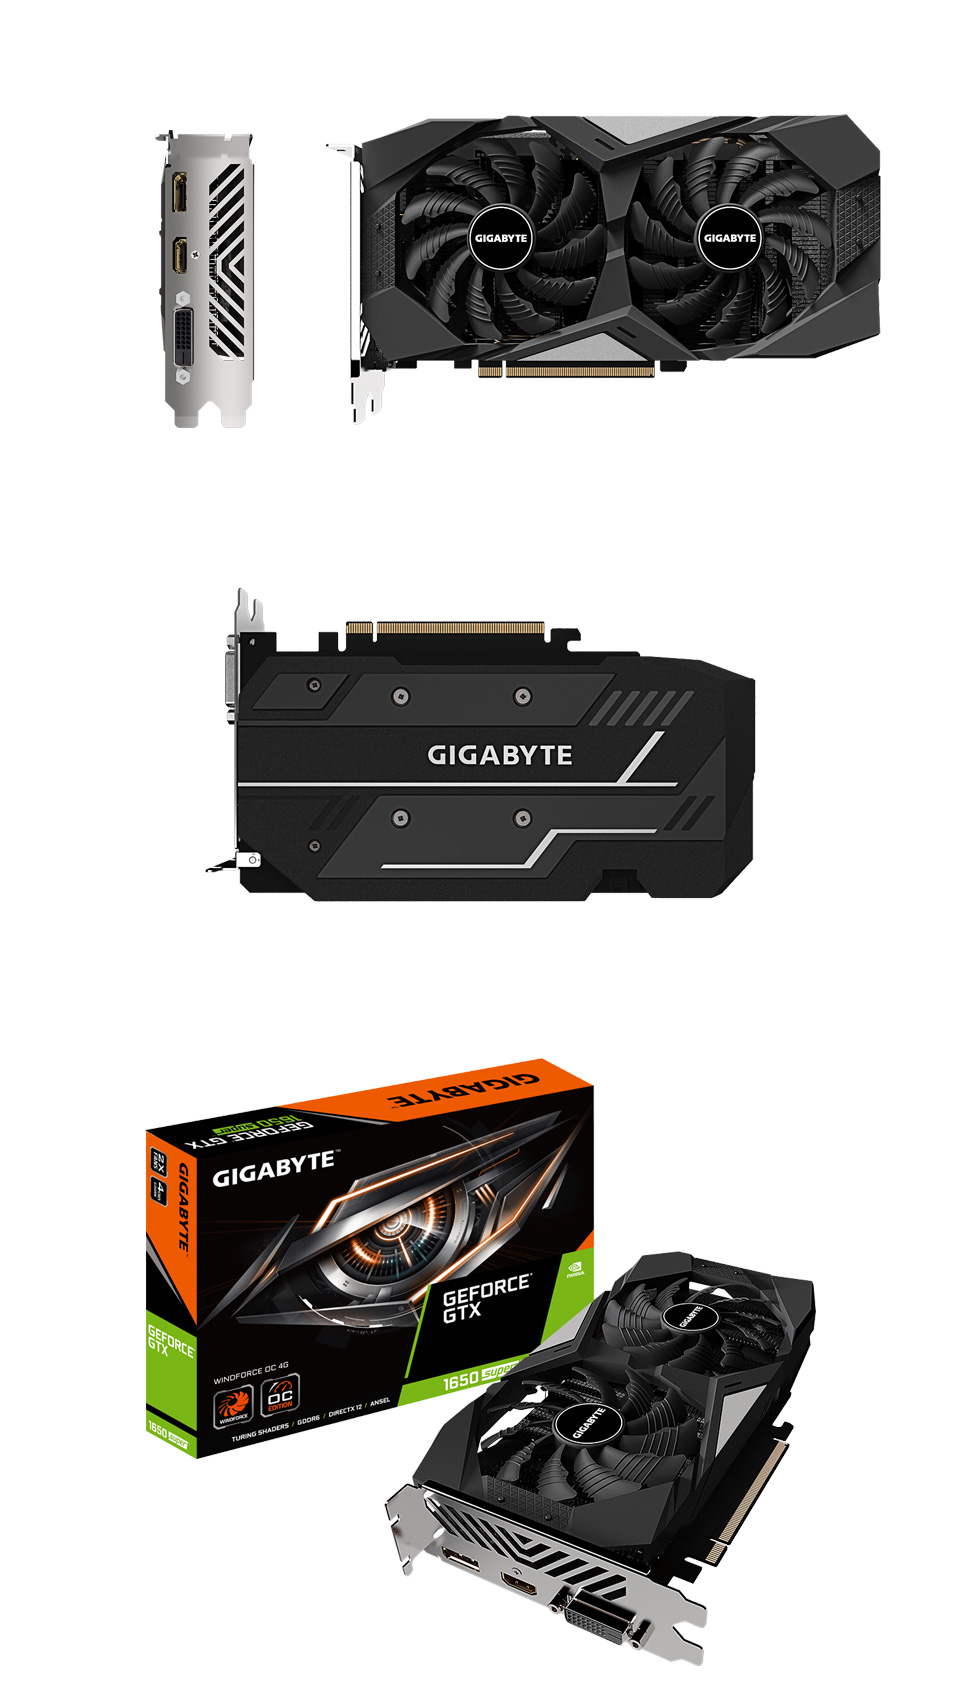 Gigabyte GeForce GTX 1650 Super WindForce OC 4GB product